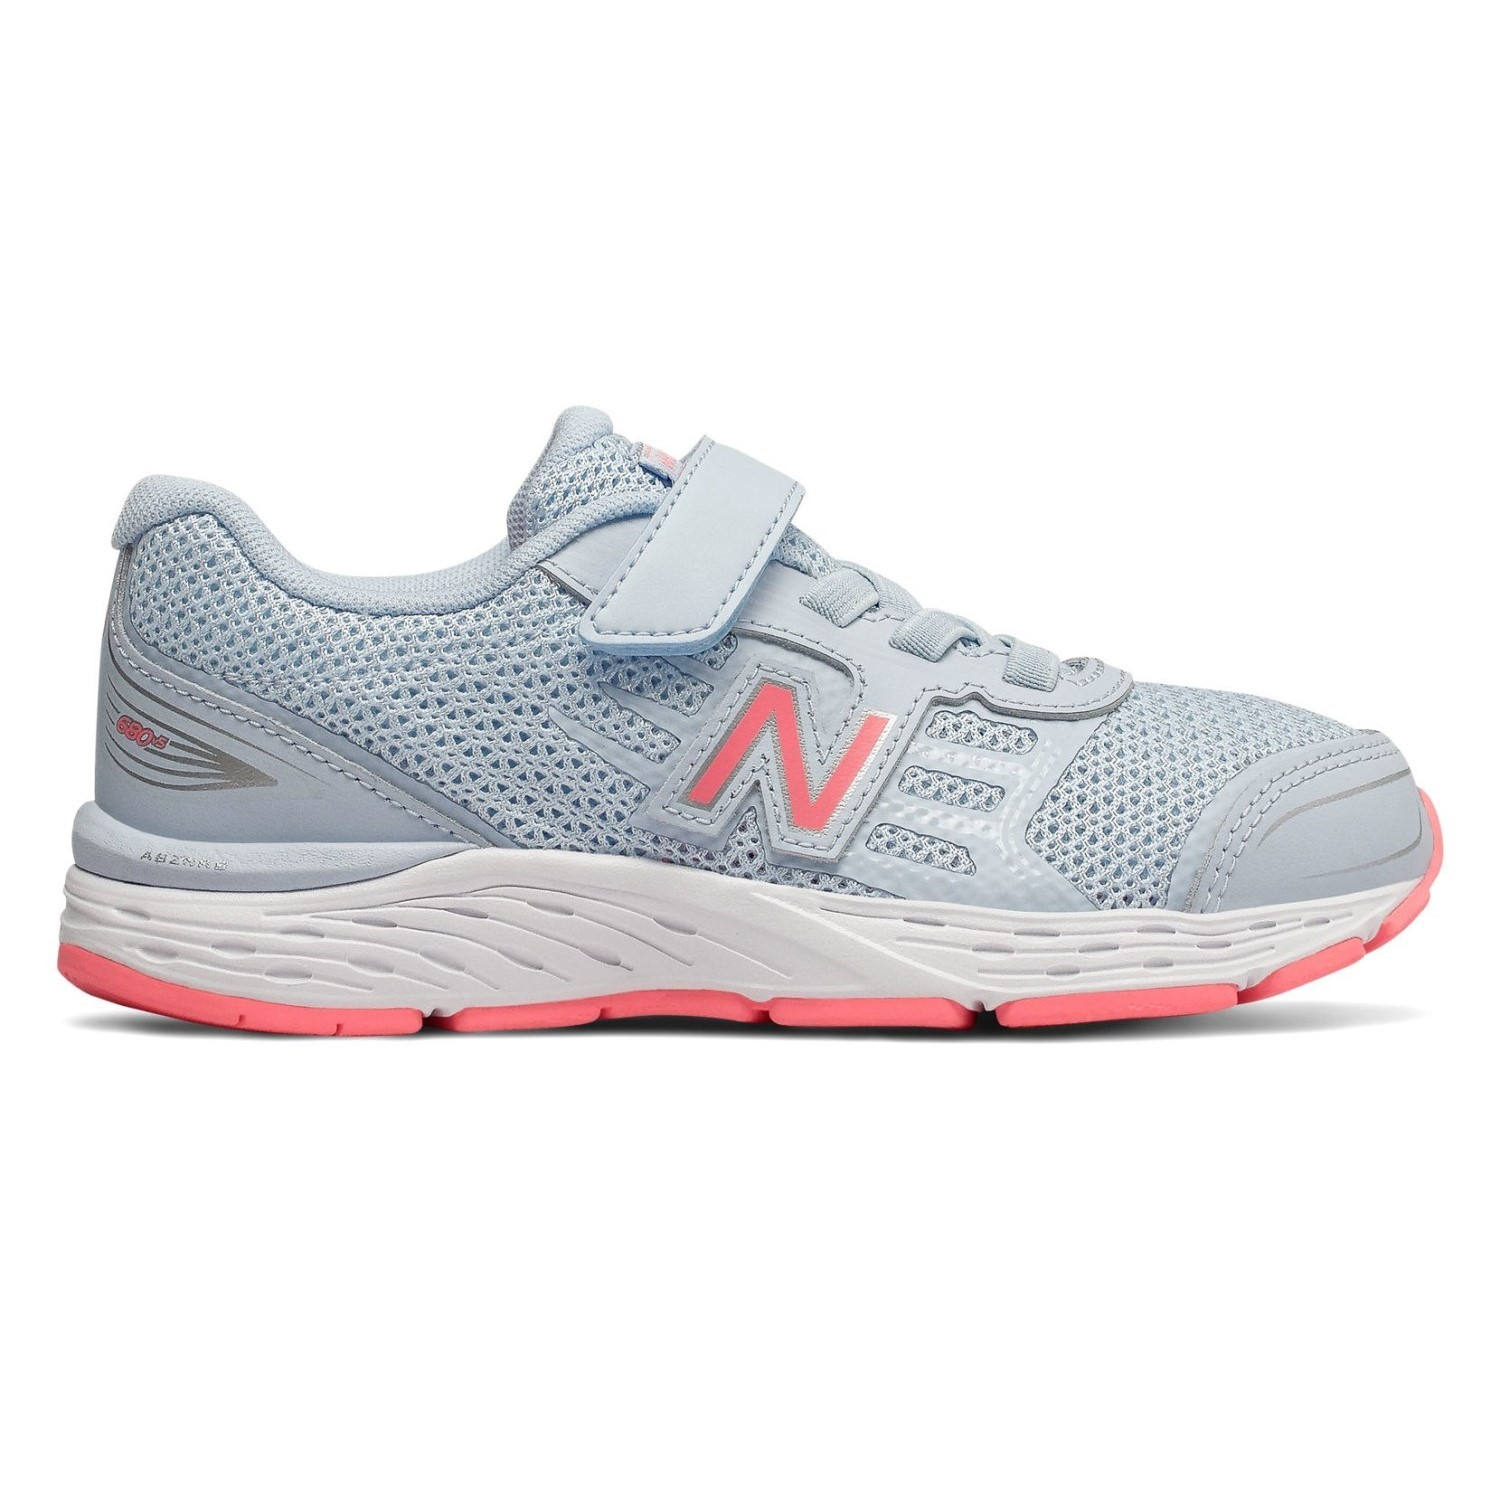 fc0778480260 New Balance 680v5 Velcro - Kids Girls Running Shoes - Air Blue Guava ...